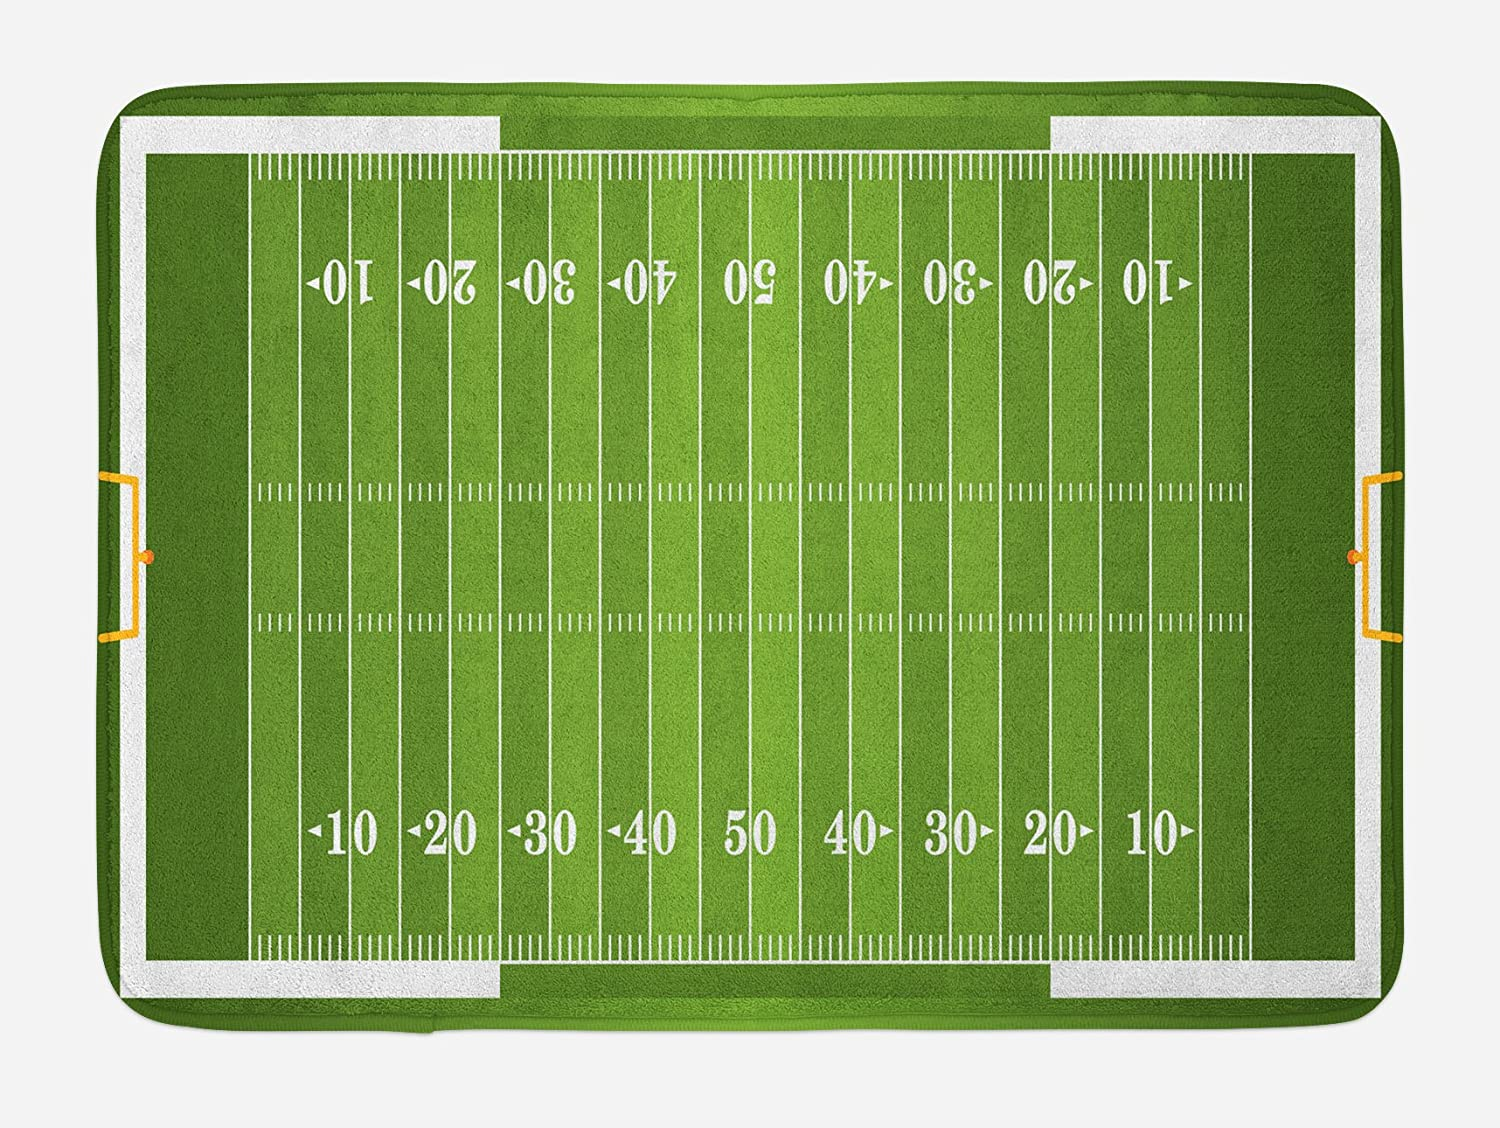 "Lunarable Football Bath Mat, Sports Field in Green Gridiron Yard Competitive Games College Teamwork Superbowl, Plush Bathroom Decor Mat with Non Slip Backing, 29.5"" X 17.5"", Green White"